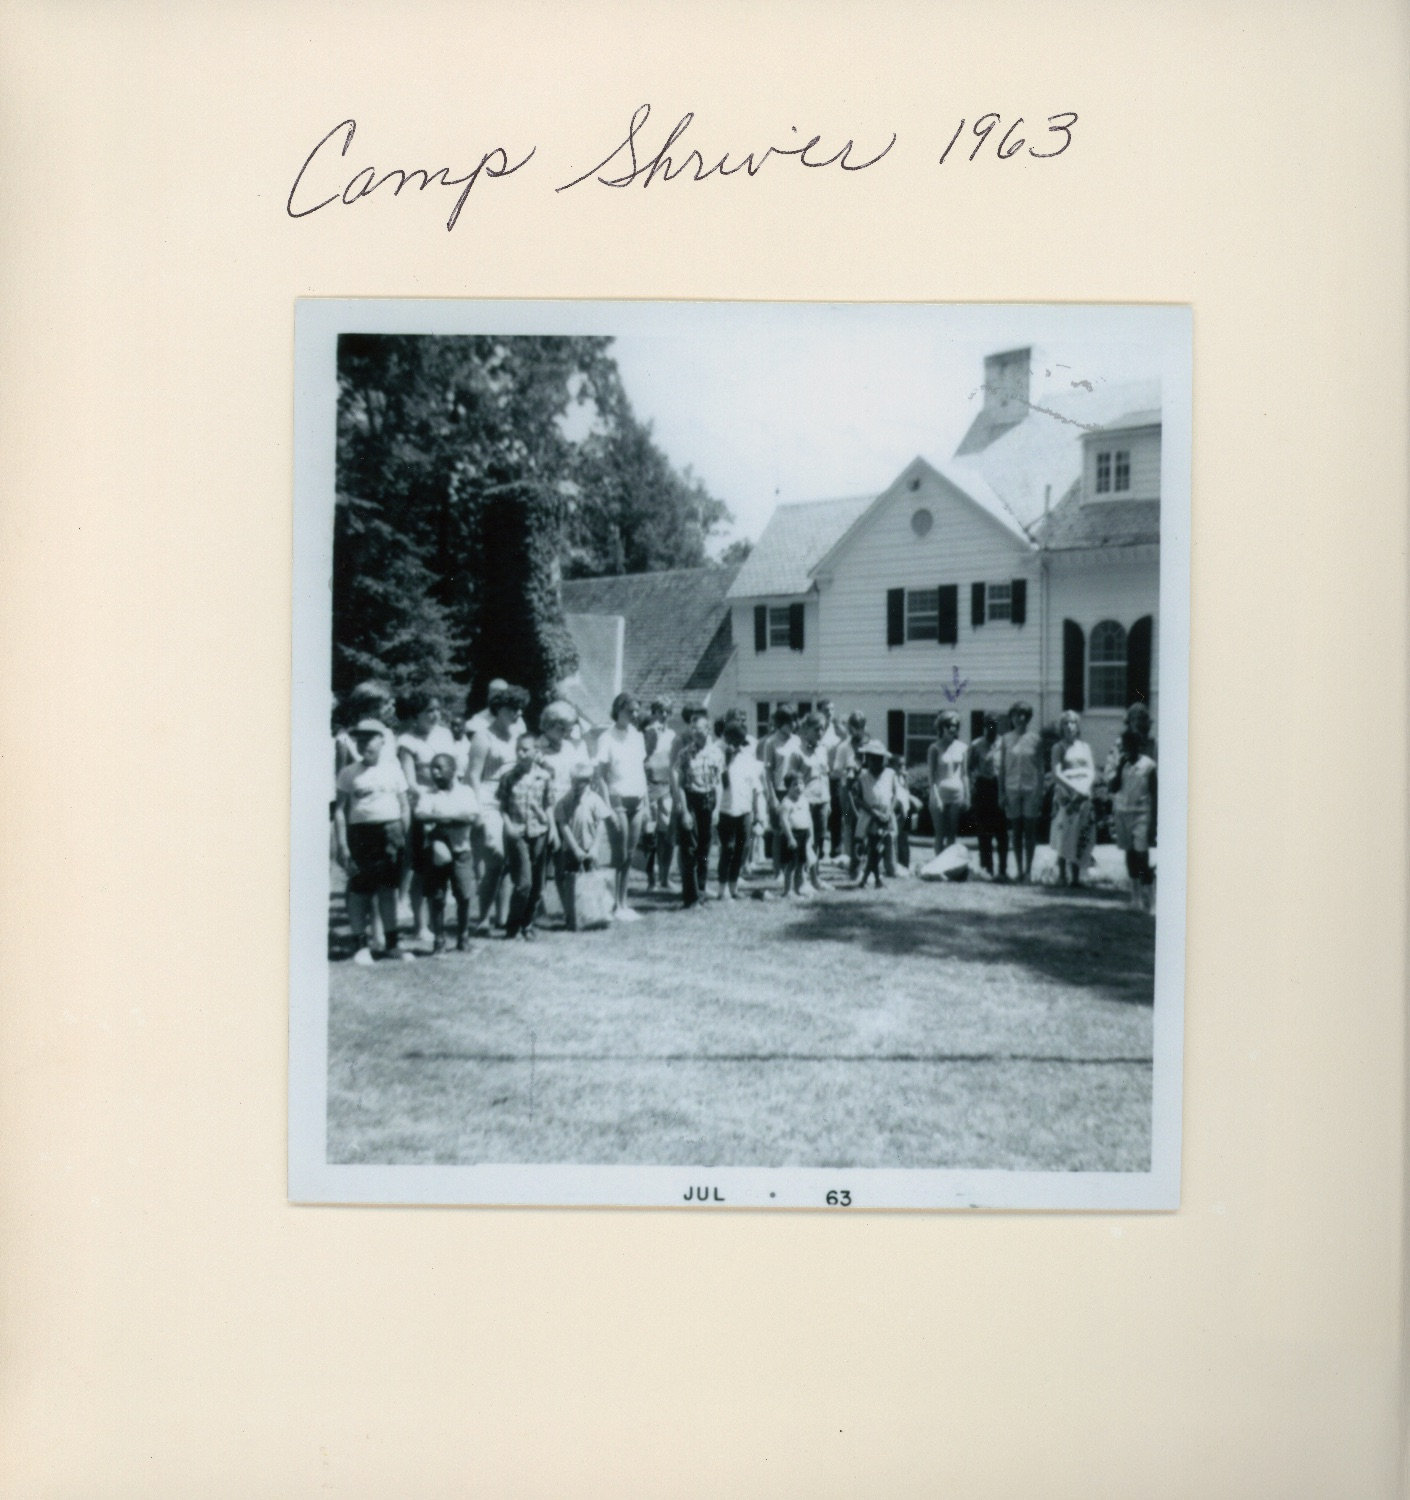 Black and white photo of group of young adults and adults in summer, sporty outfits posing in front of a house.